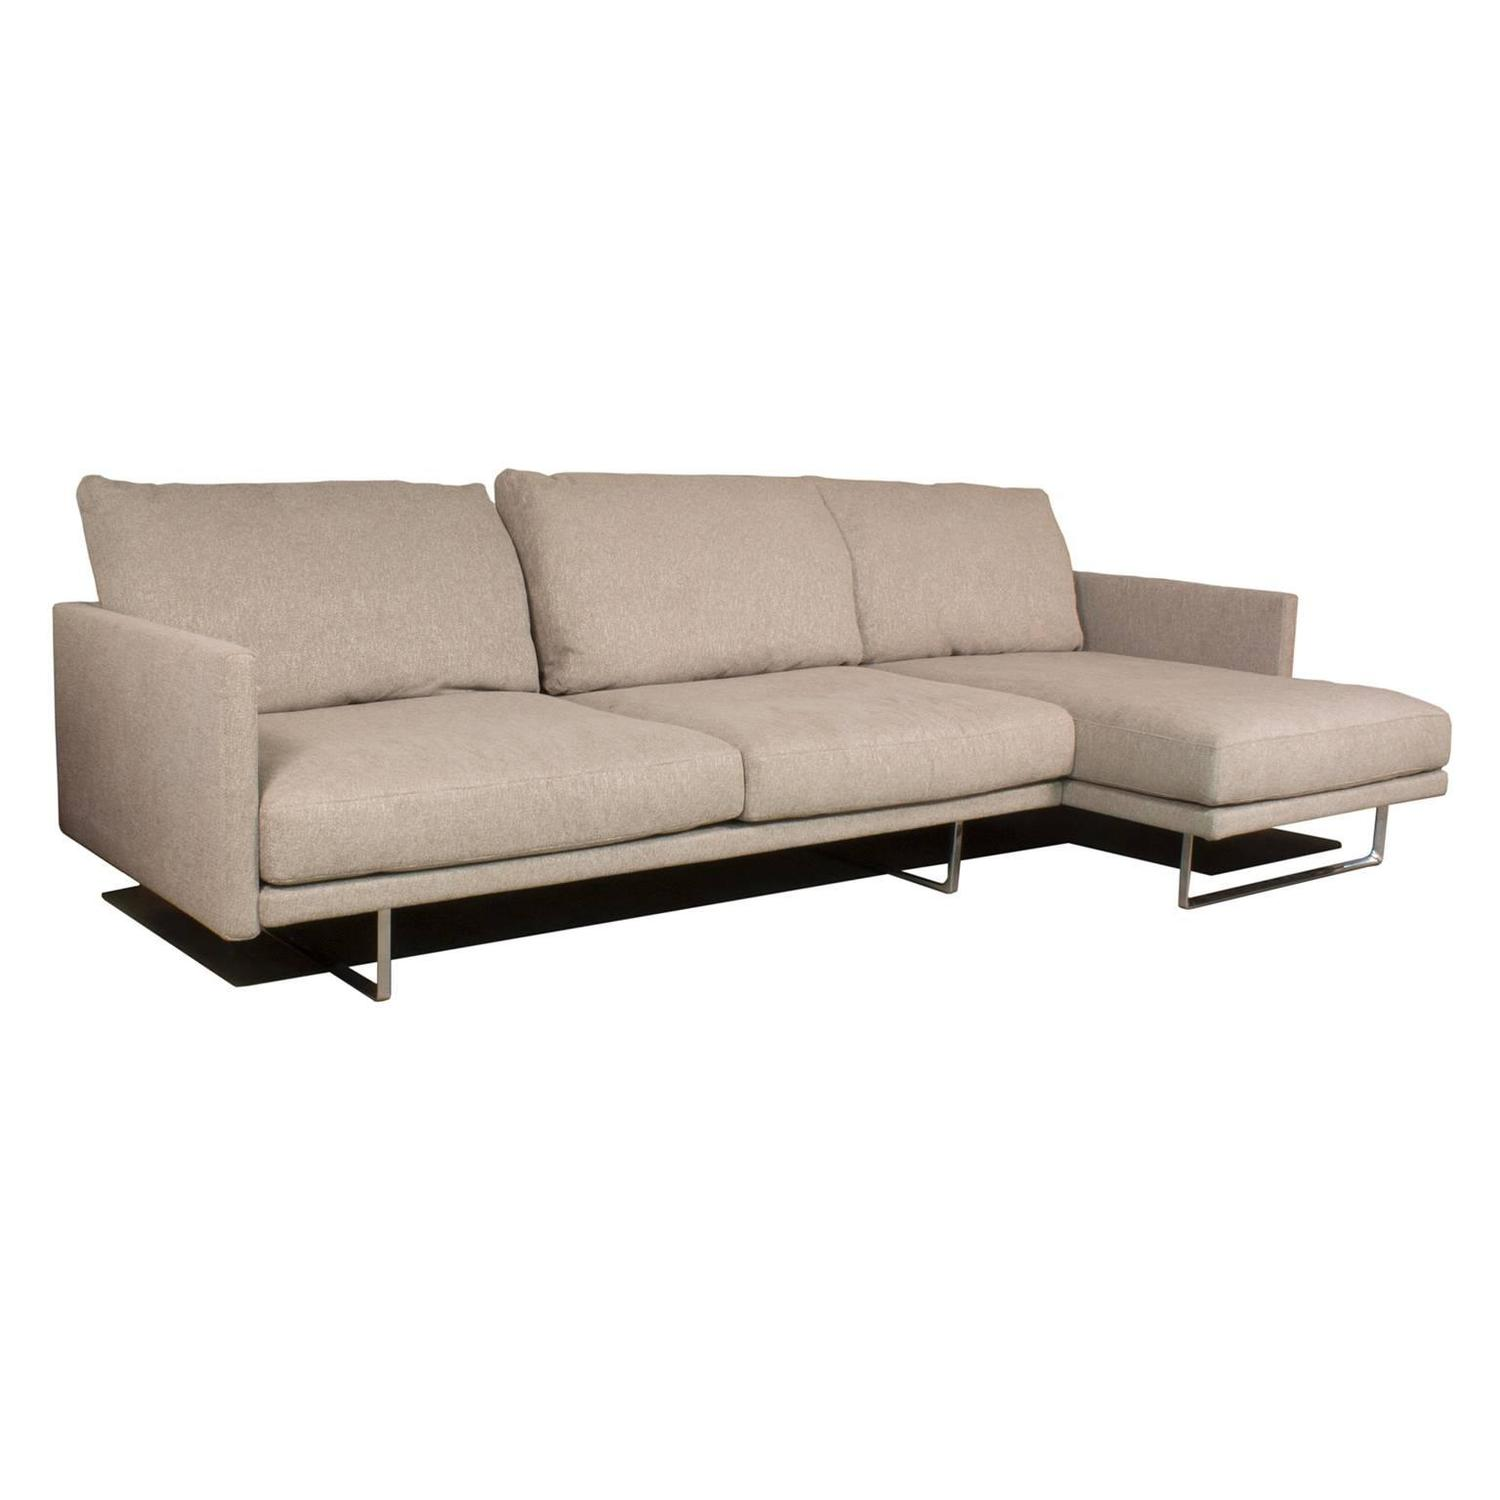 Toot sectional sofa with chaise longue by piero lissoni for Cassina chaise lounge